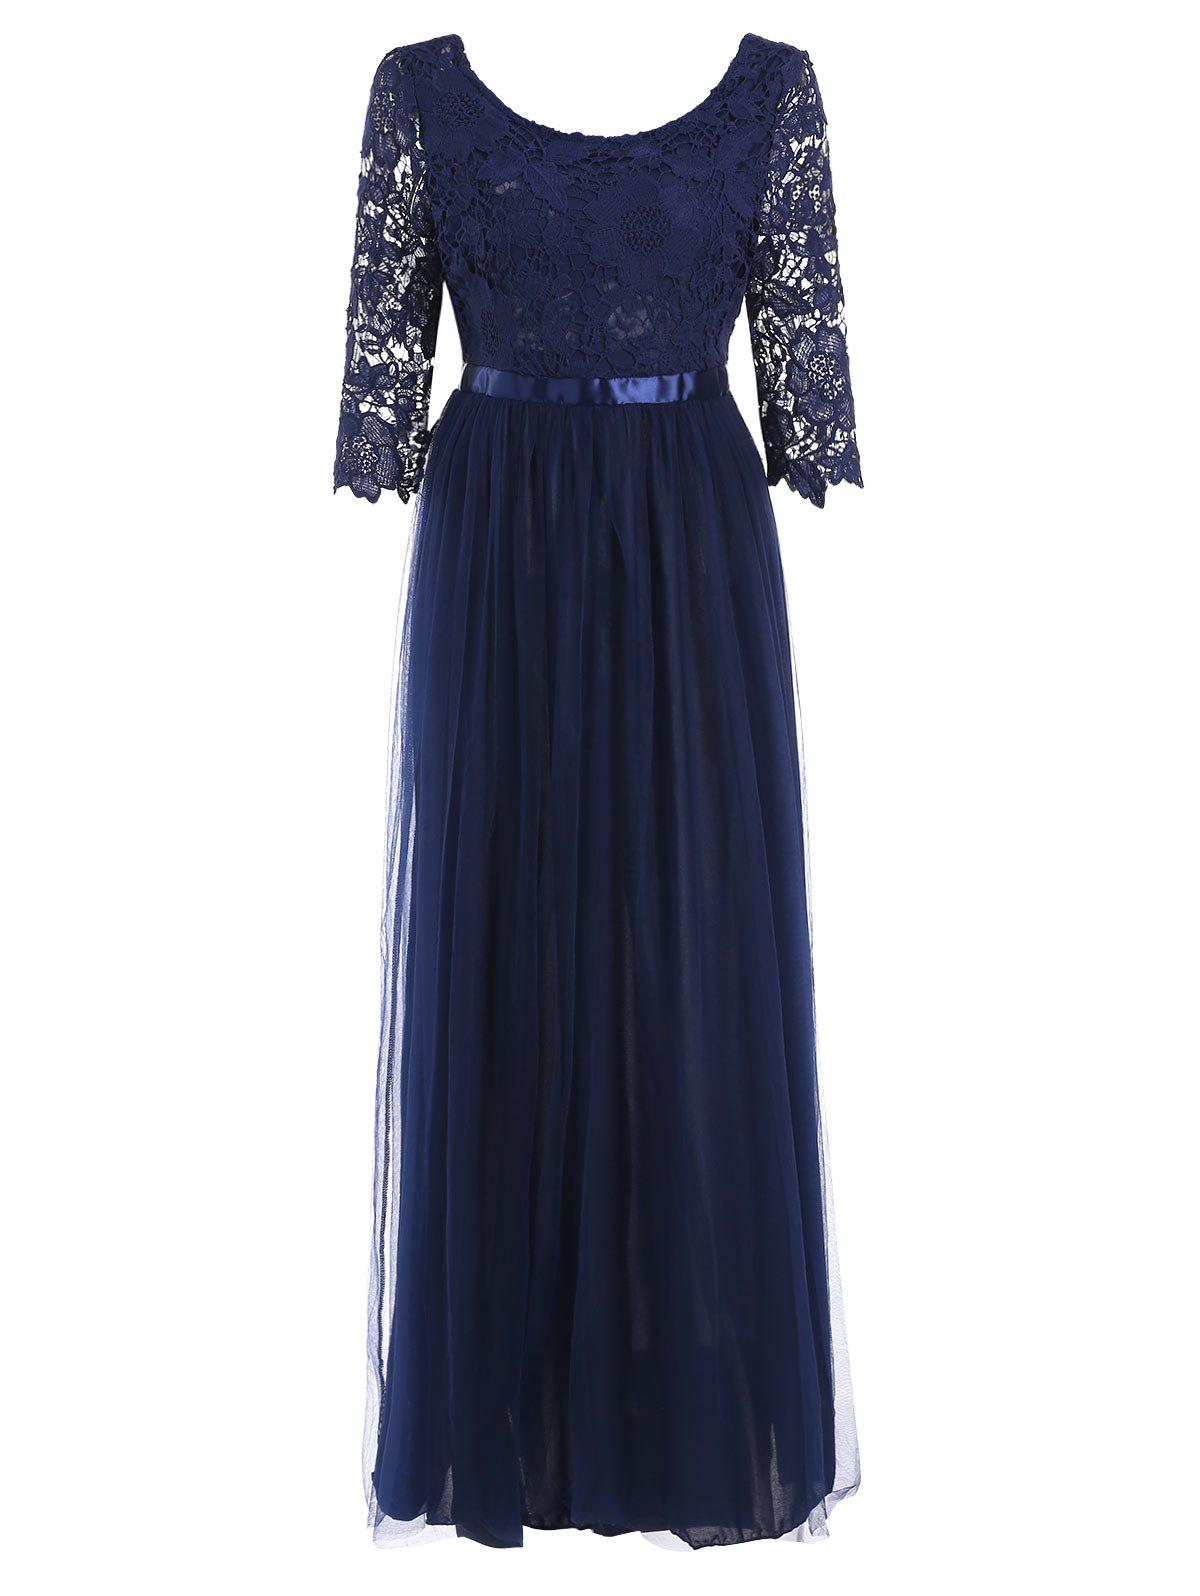 Chic Lace Panel Half Sleeve Floor Length Dress